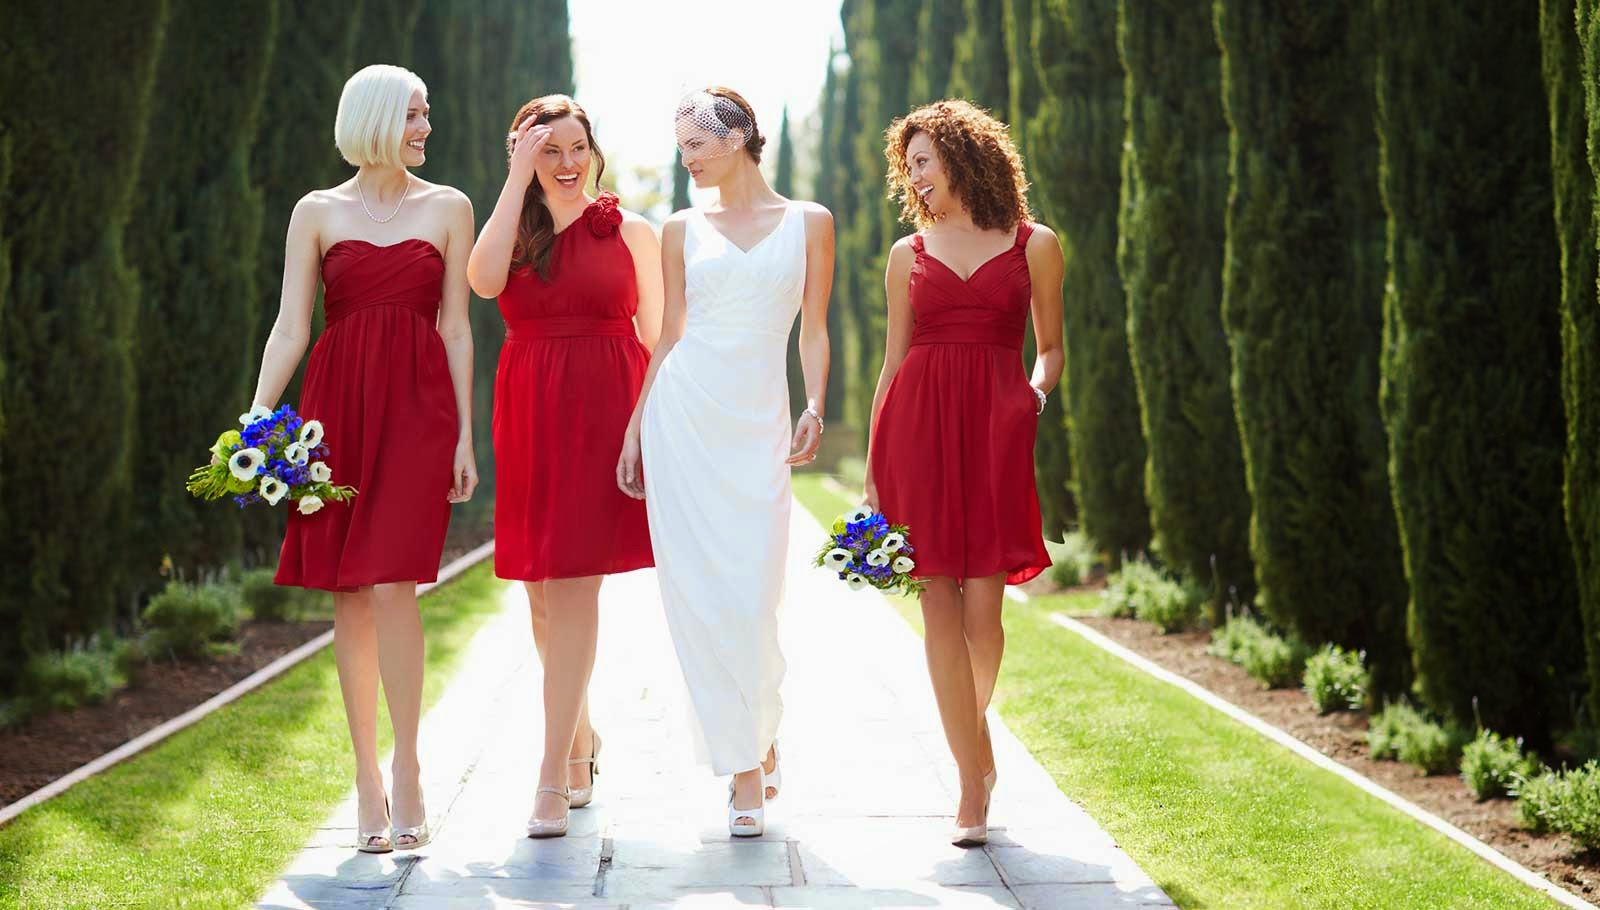 Simple Red & White Wedding Dresses Bridesmaids Photo HD